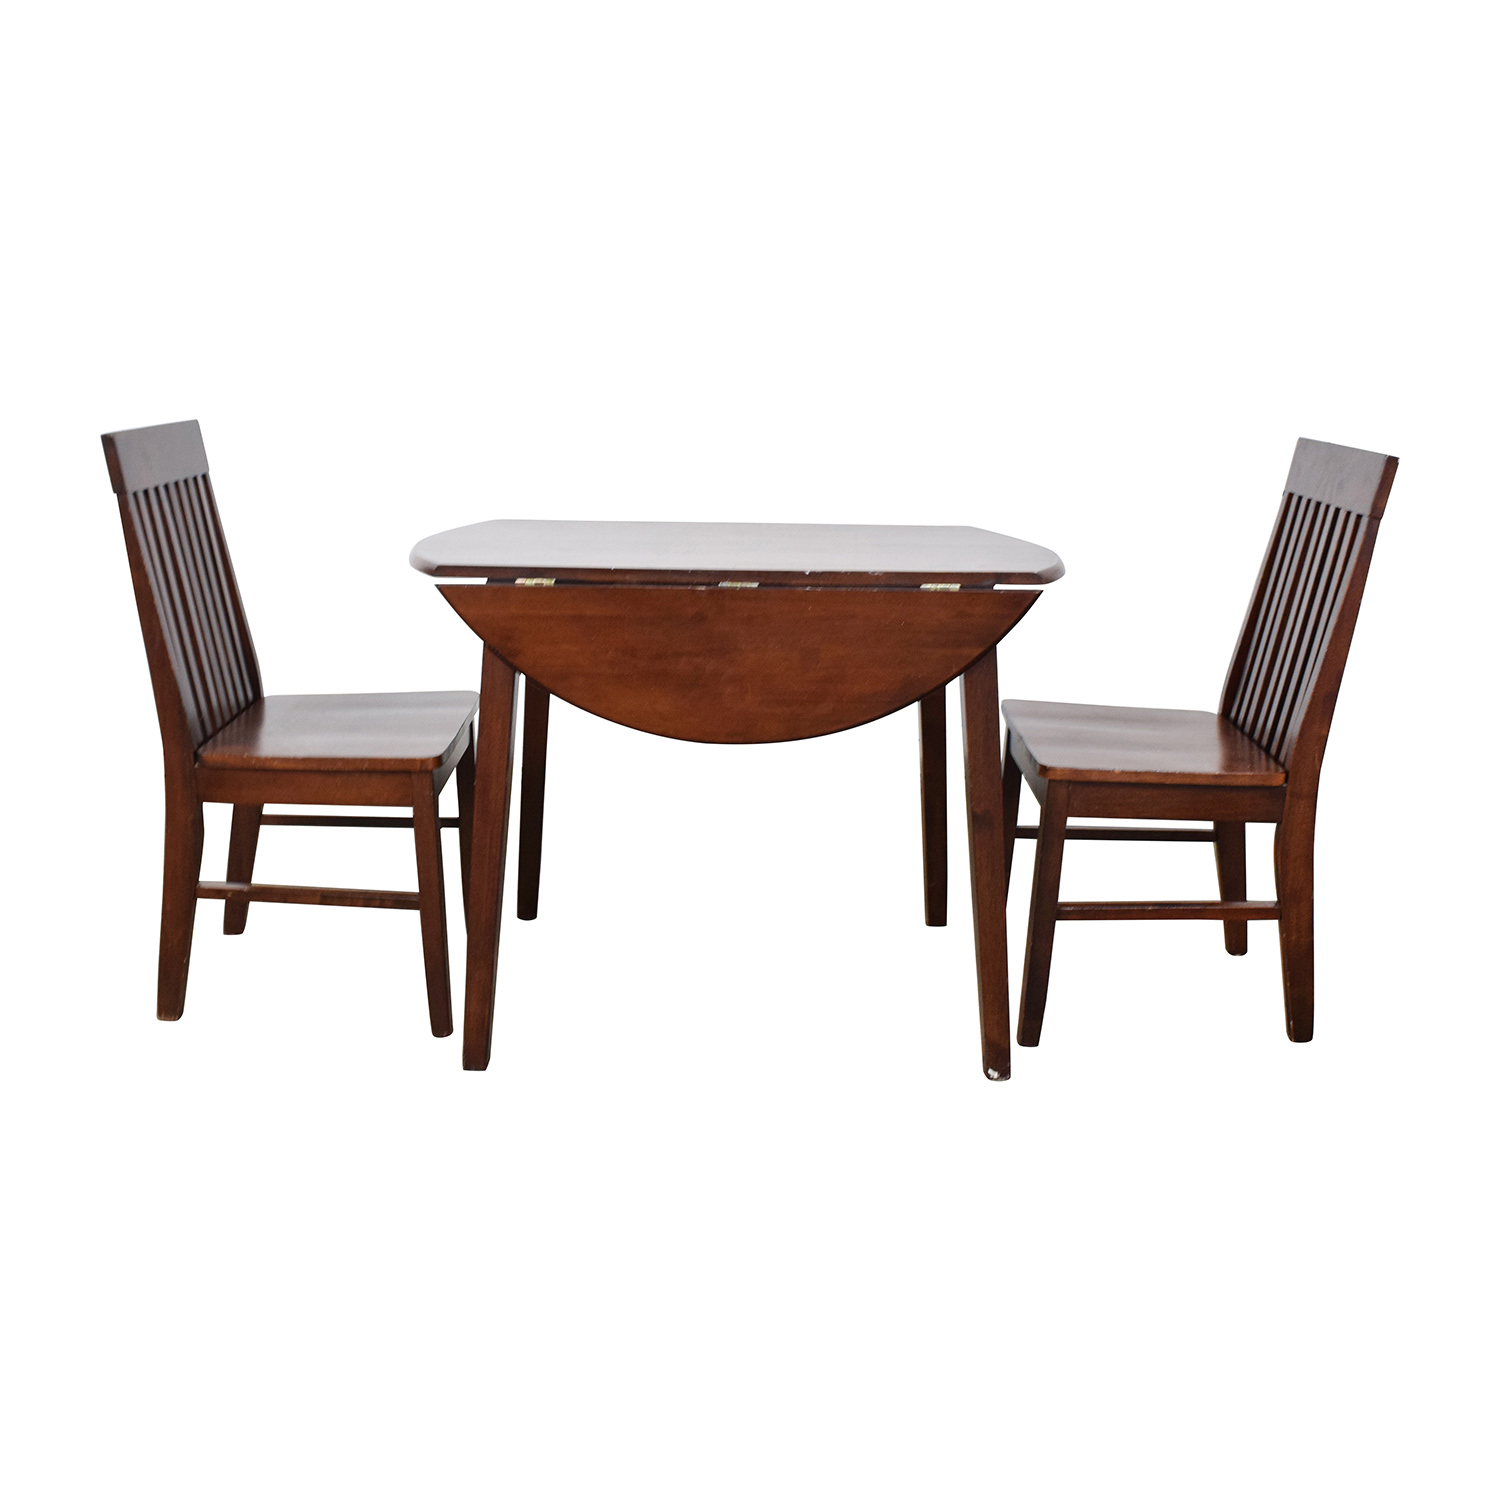 Wondrous 60 Off Round Dining Table With Folding Sides And Chairs Tables Bralicious Painted Fabric Chair Ideas Braliciousco